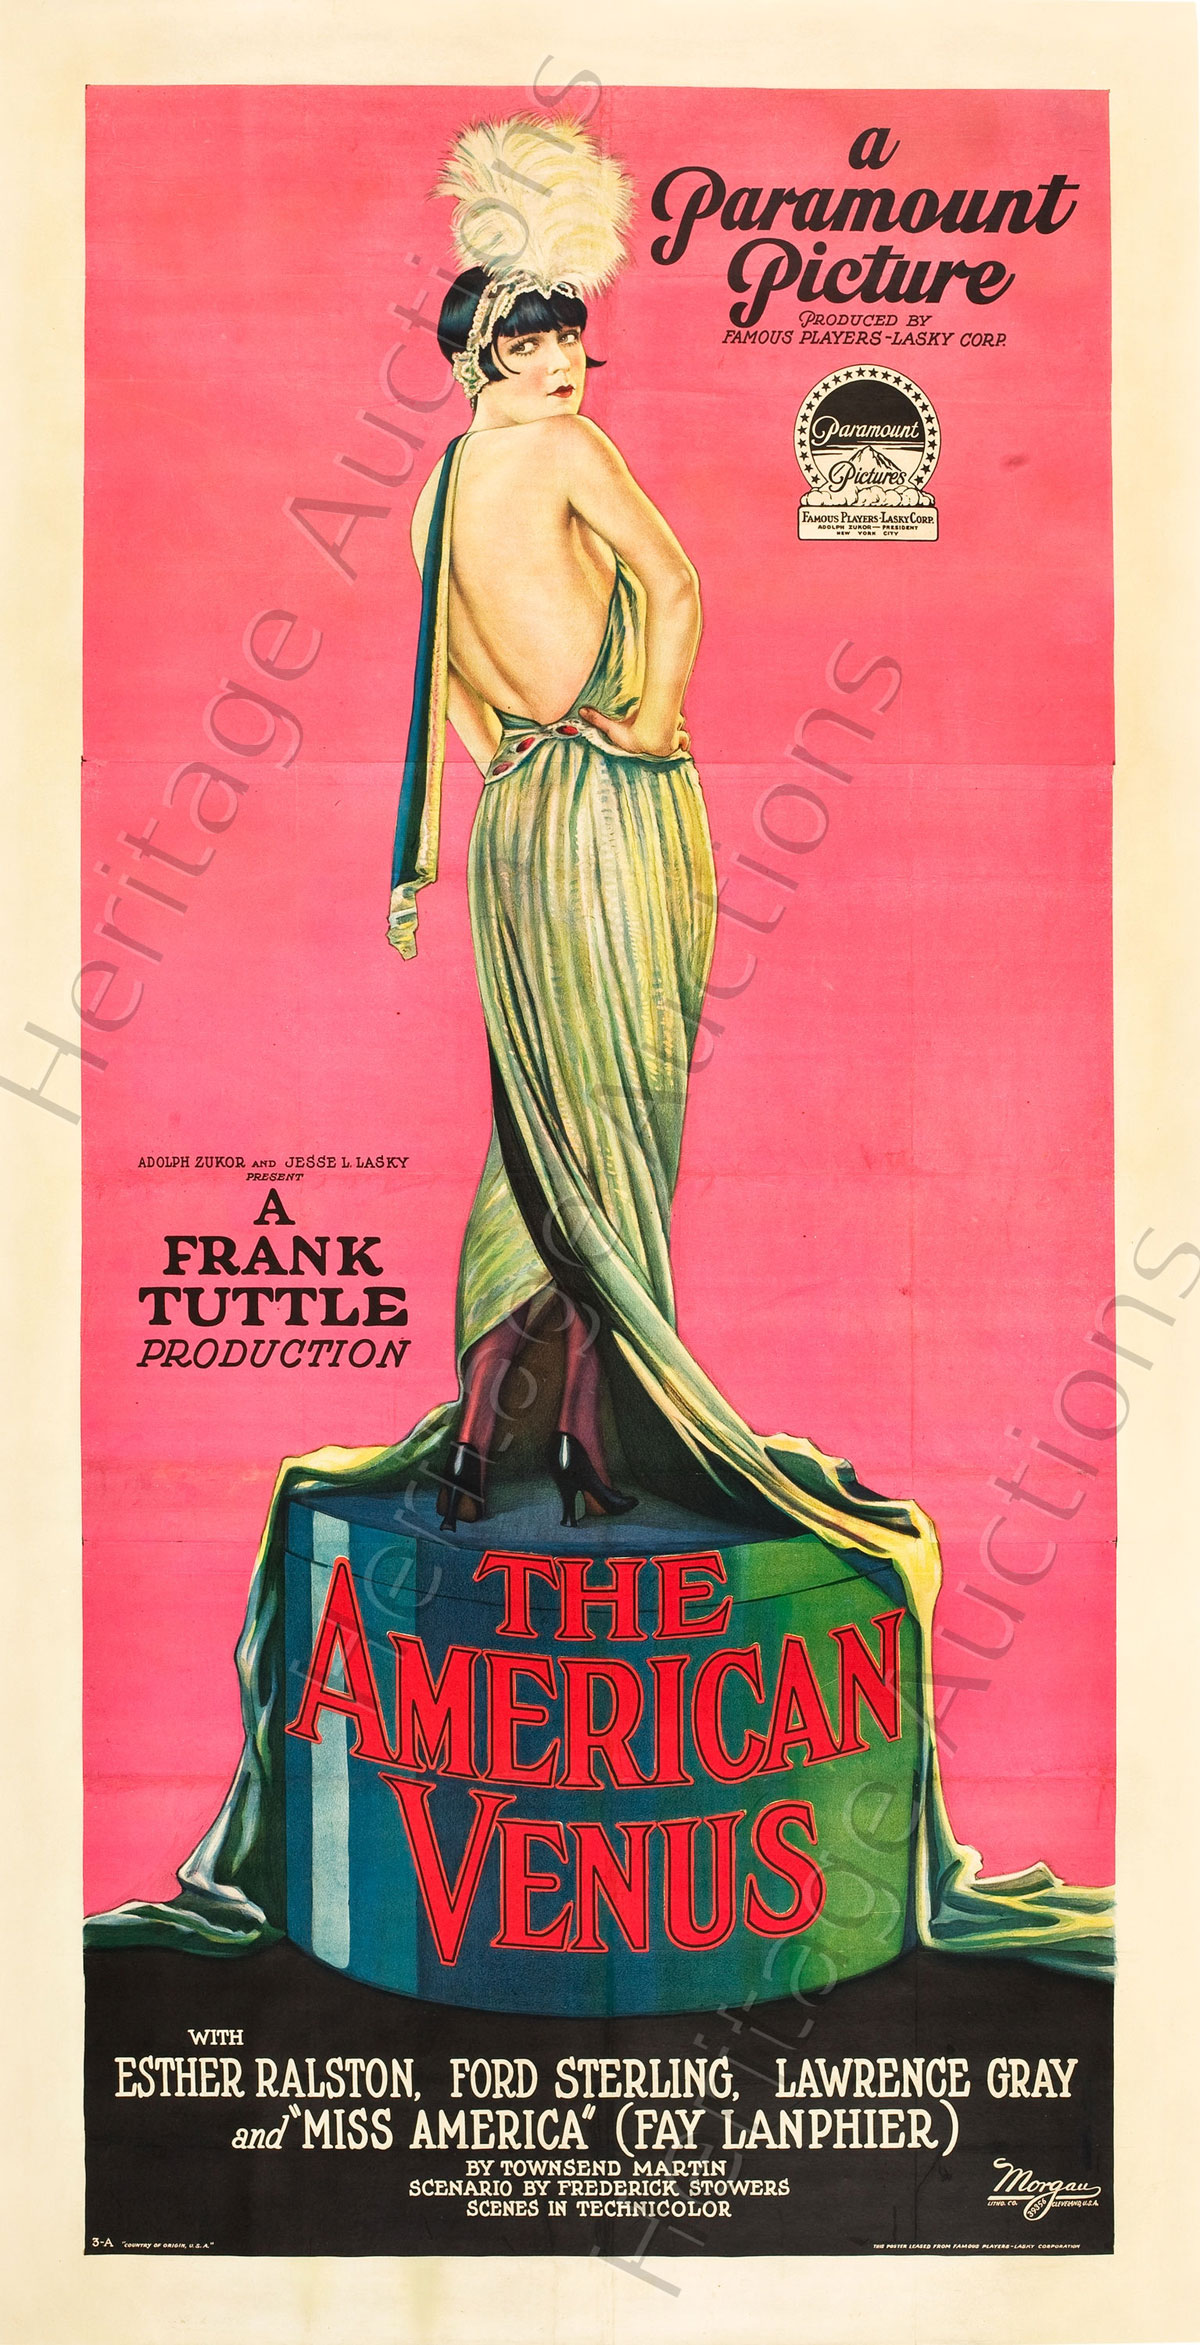 1926 Three Sheet Poster for The American Venus Leads $1.45 Million Movie Posters Auction